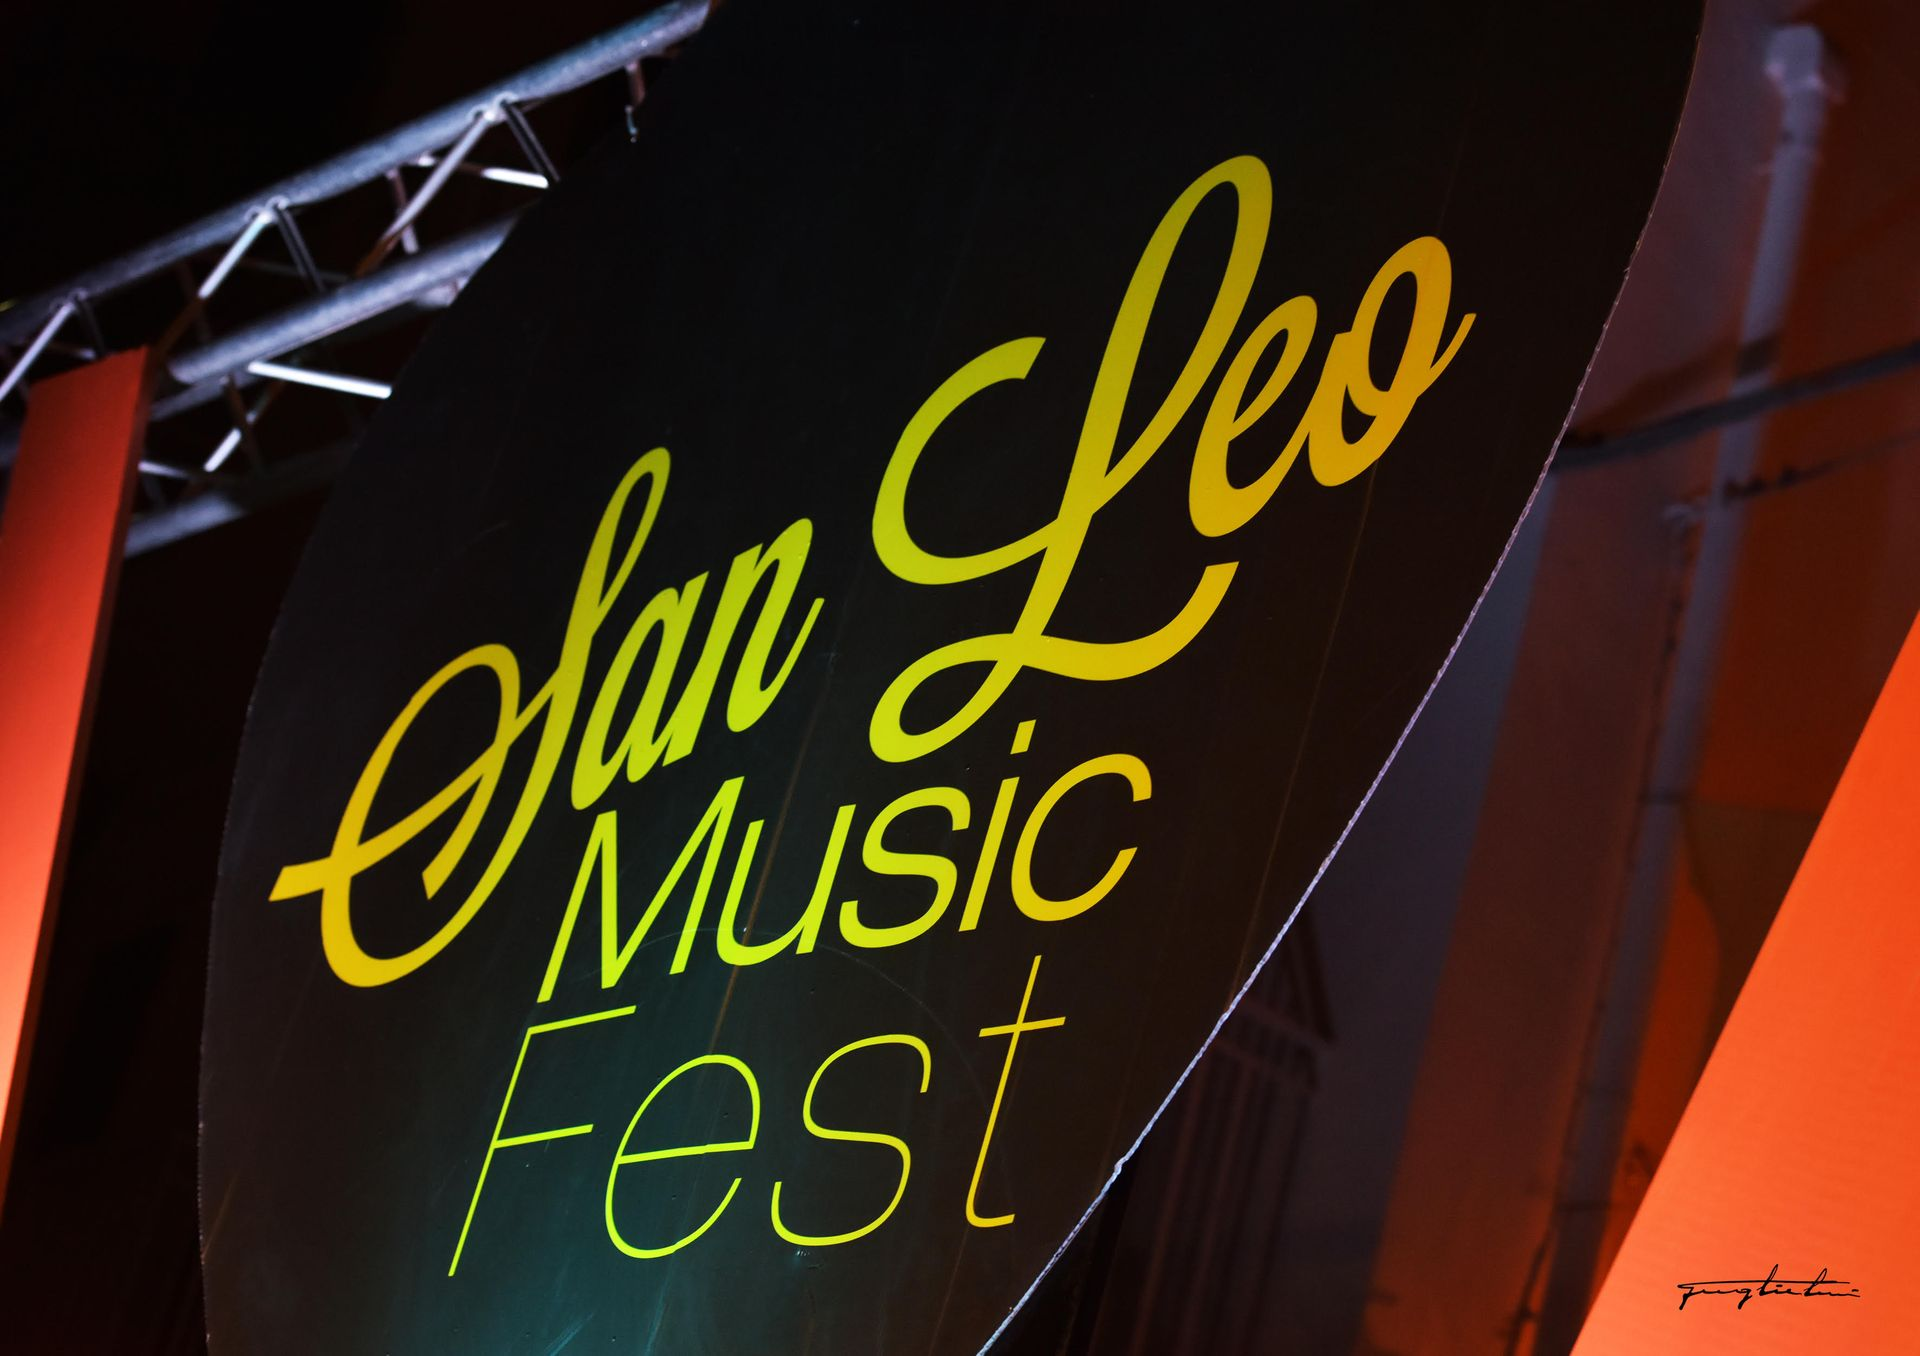 San Leo Music Fest 2018 - Officina Musicale